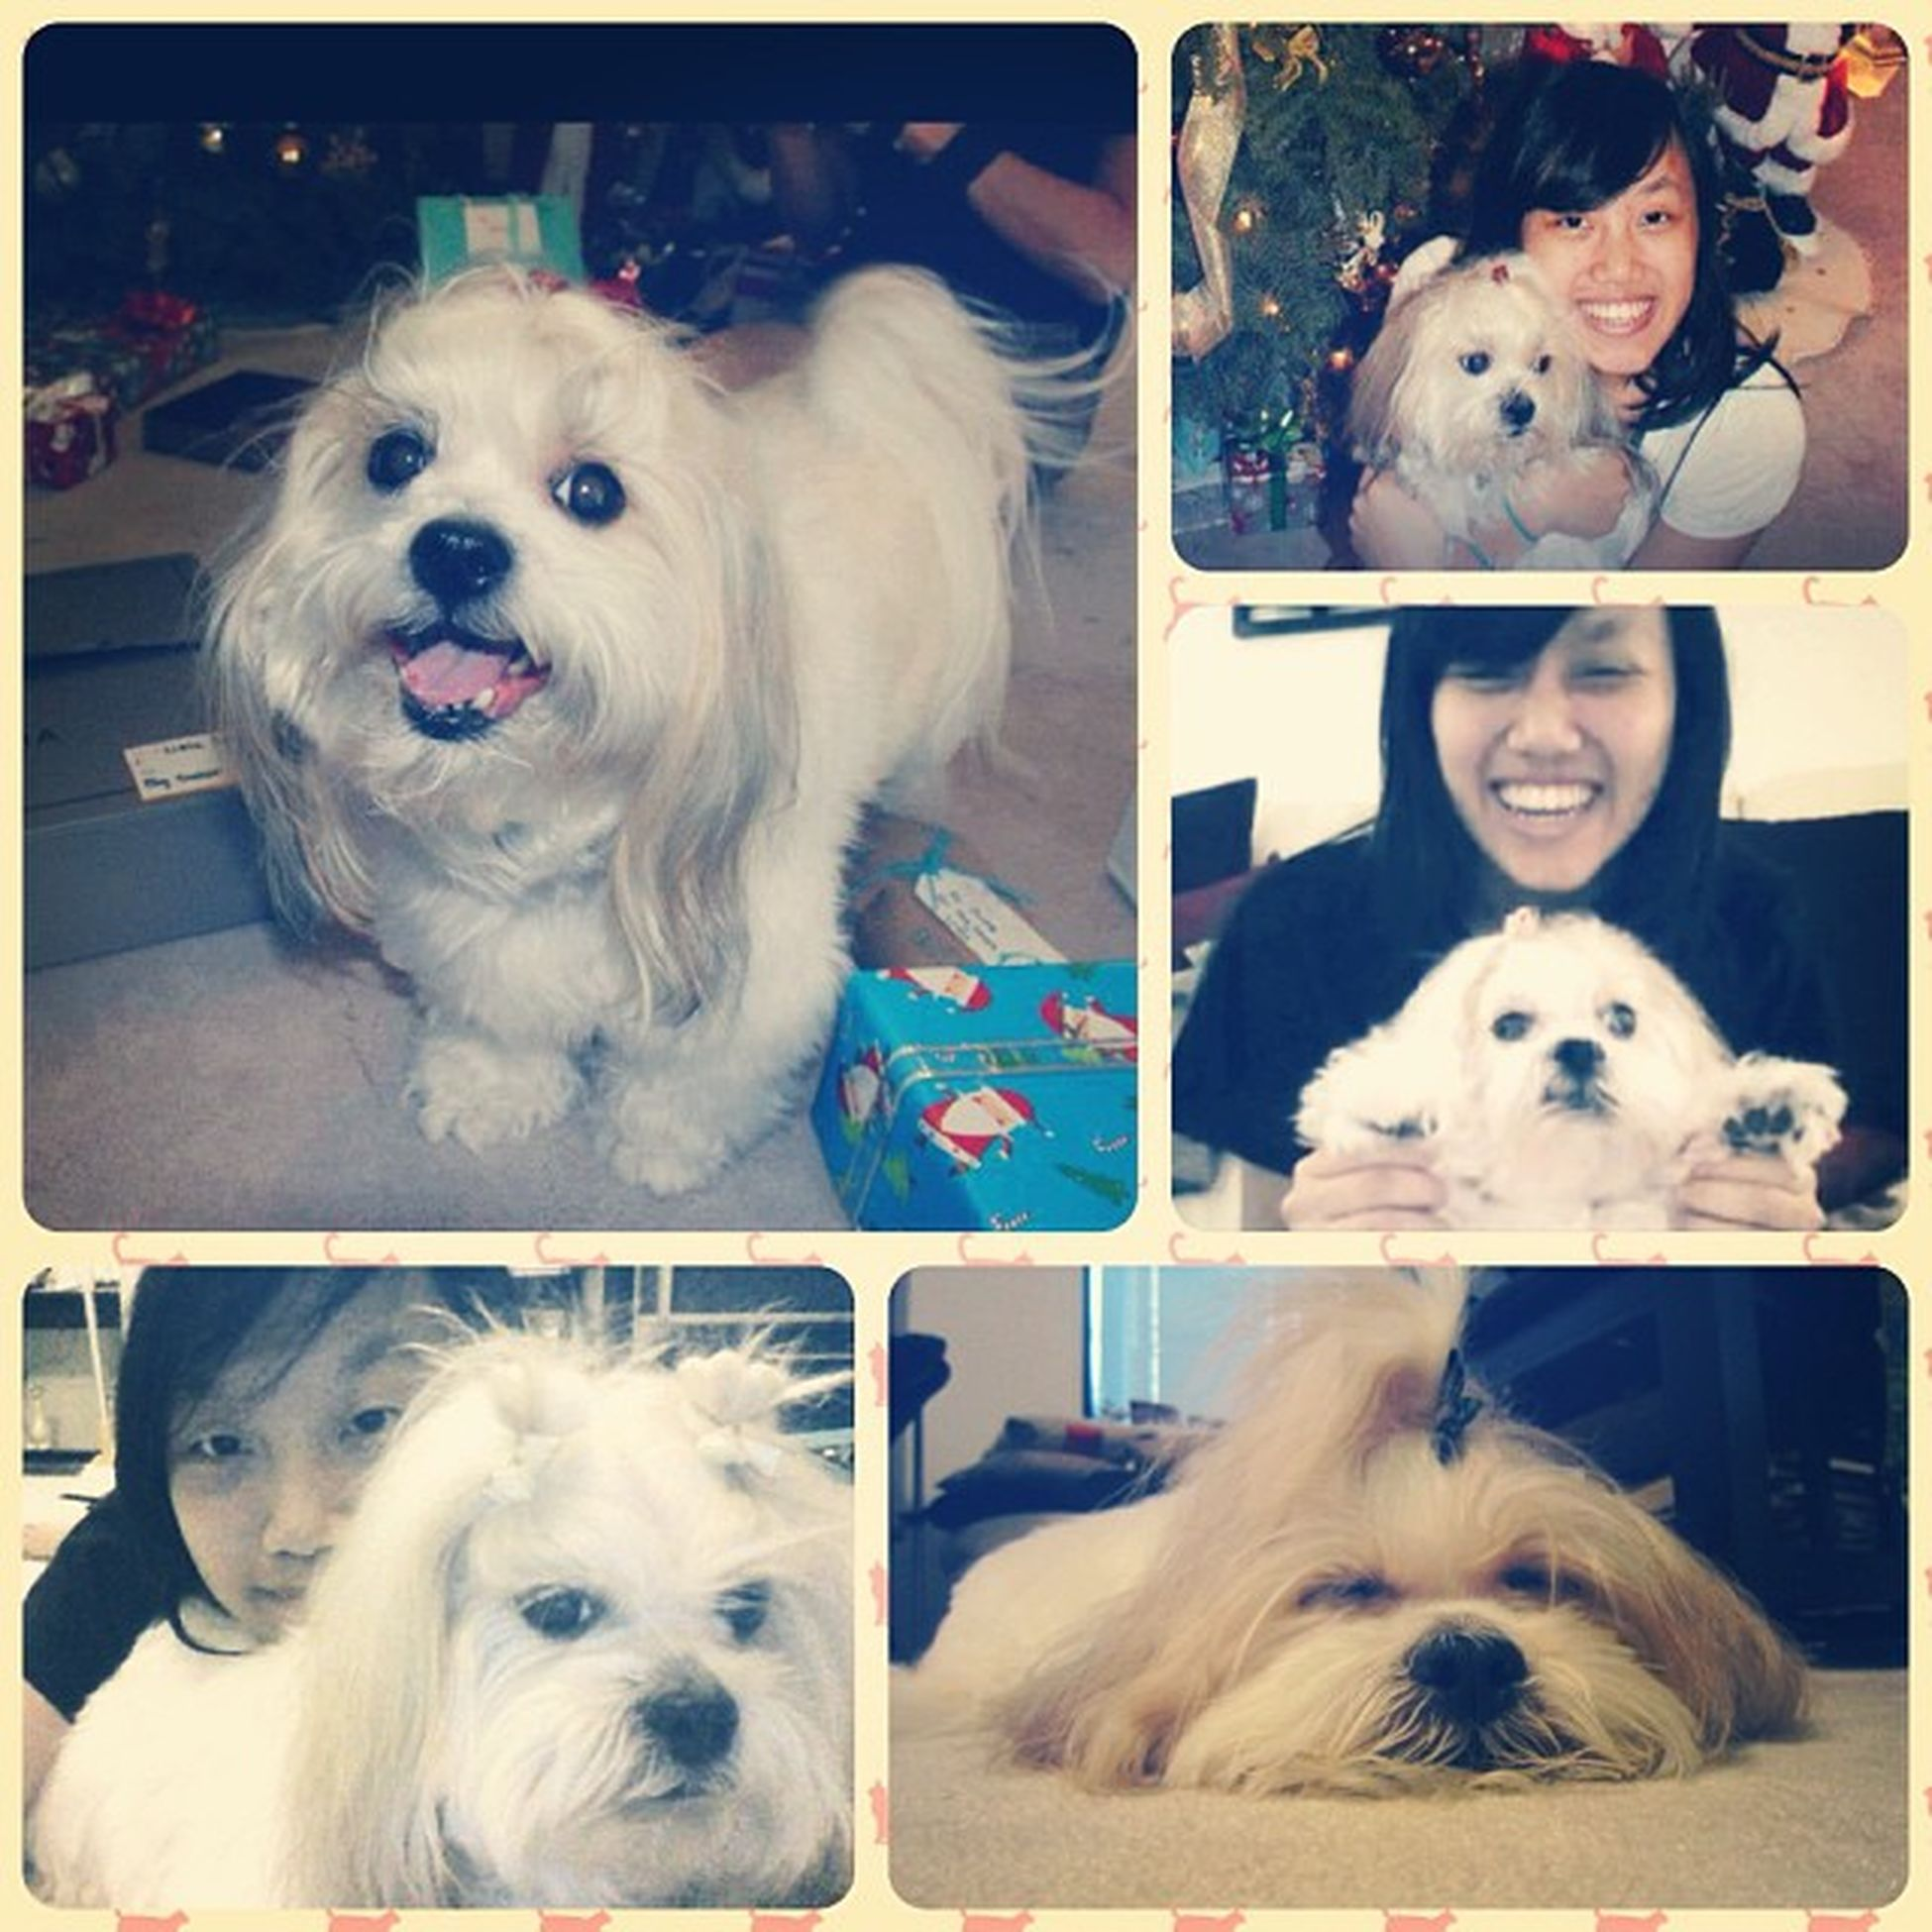 Happy Belated Birthday to the fattest, dumbest, most spoiled dog, Candy. I'll see you soon my baby. ??? Princesscandy Cute Dog Longdistance imissdiswan